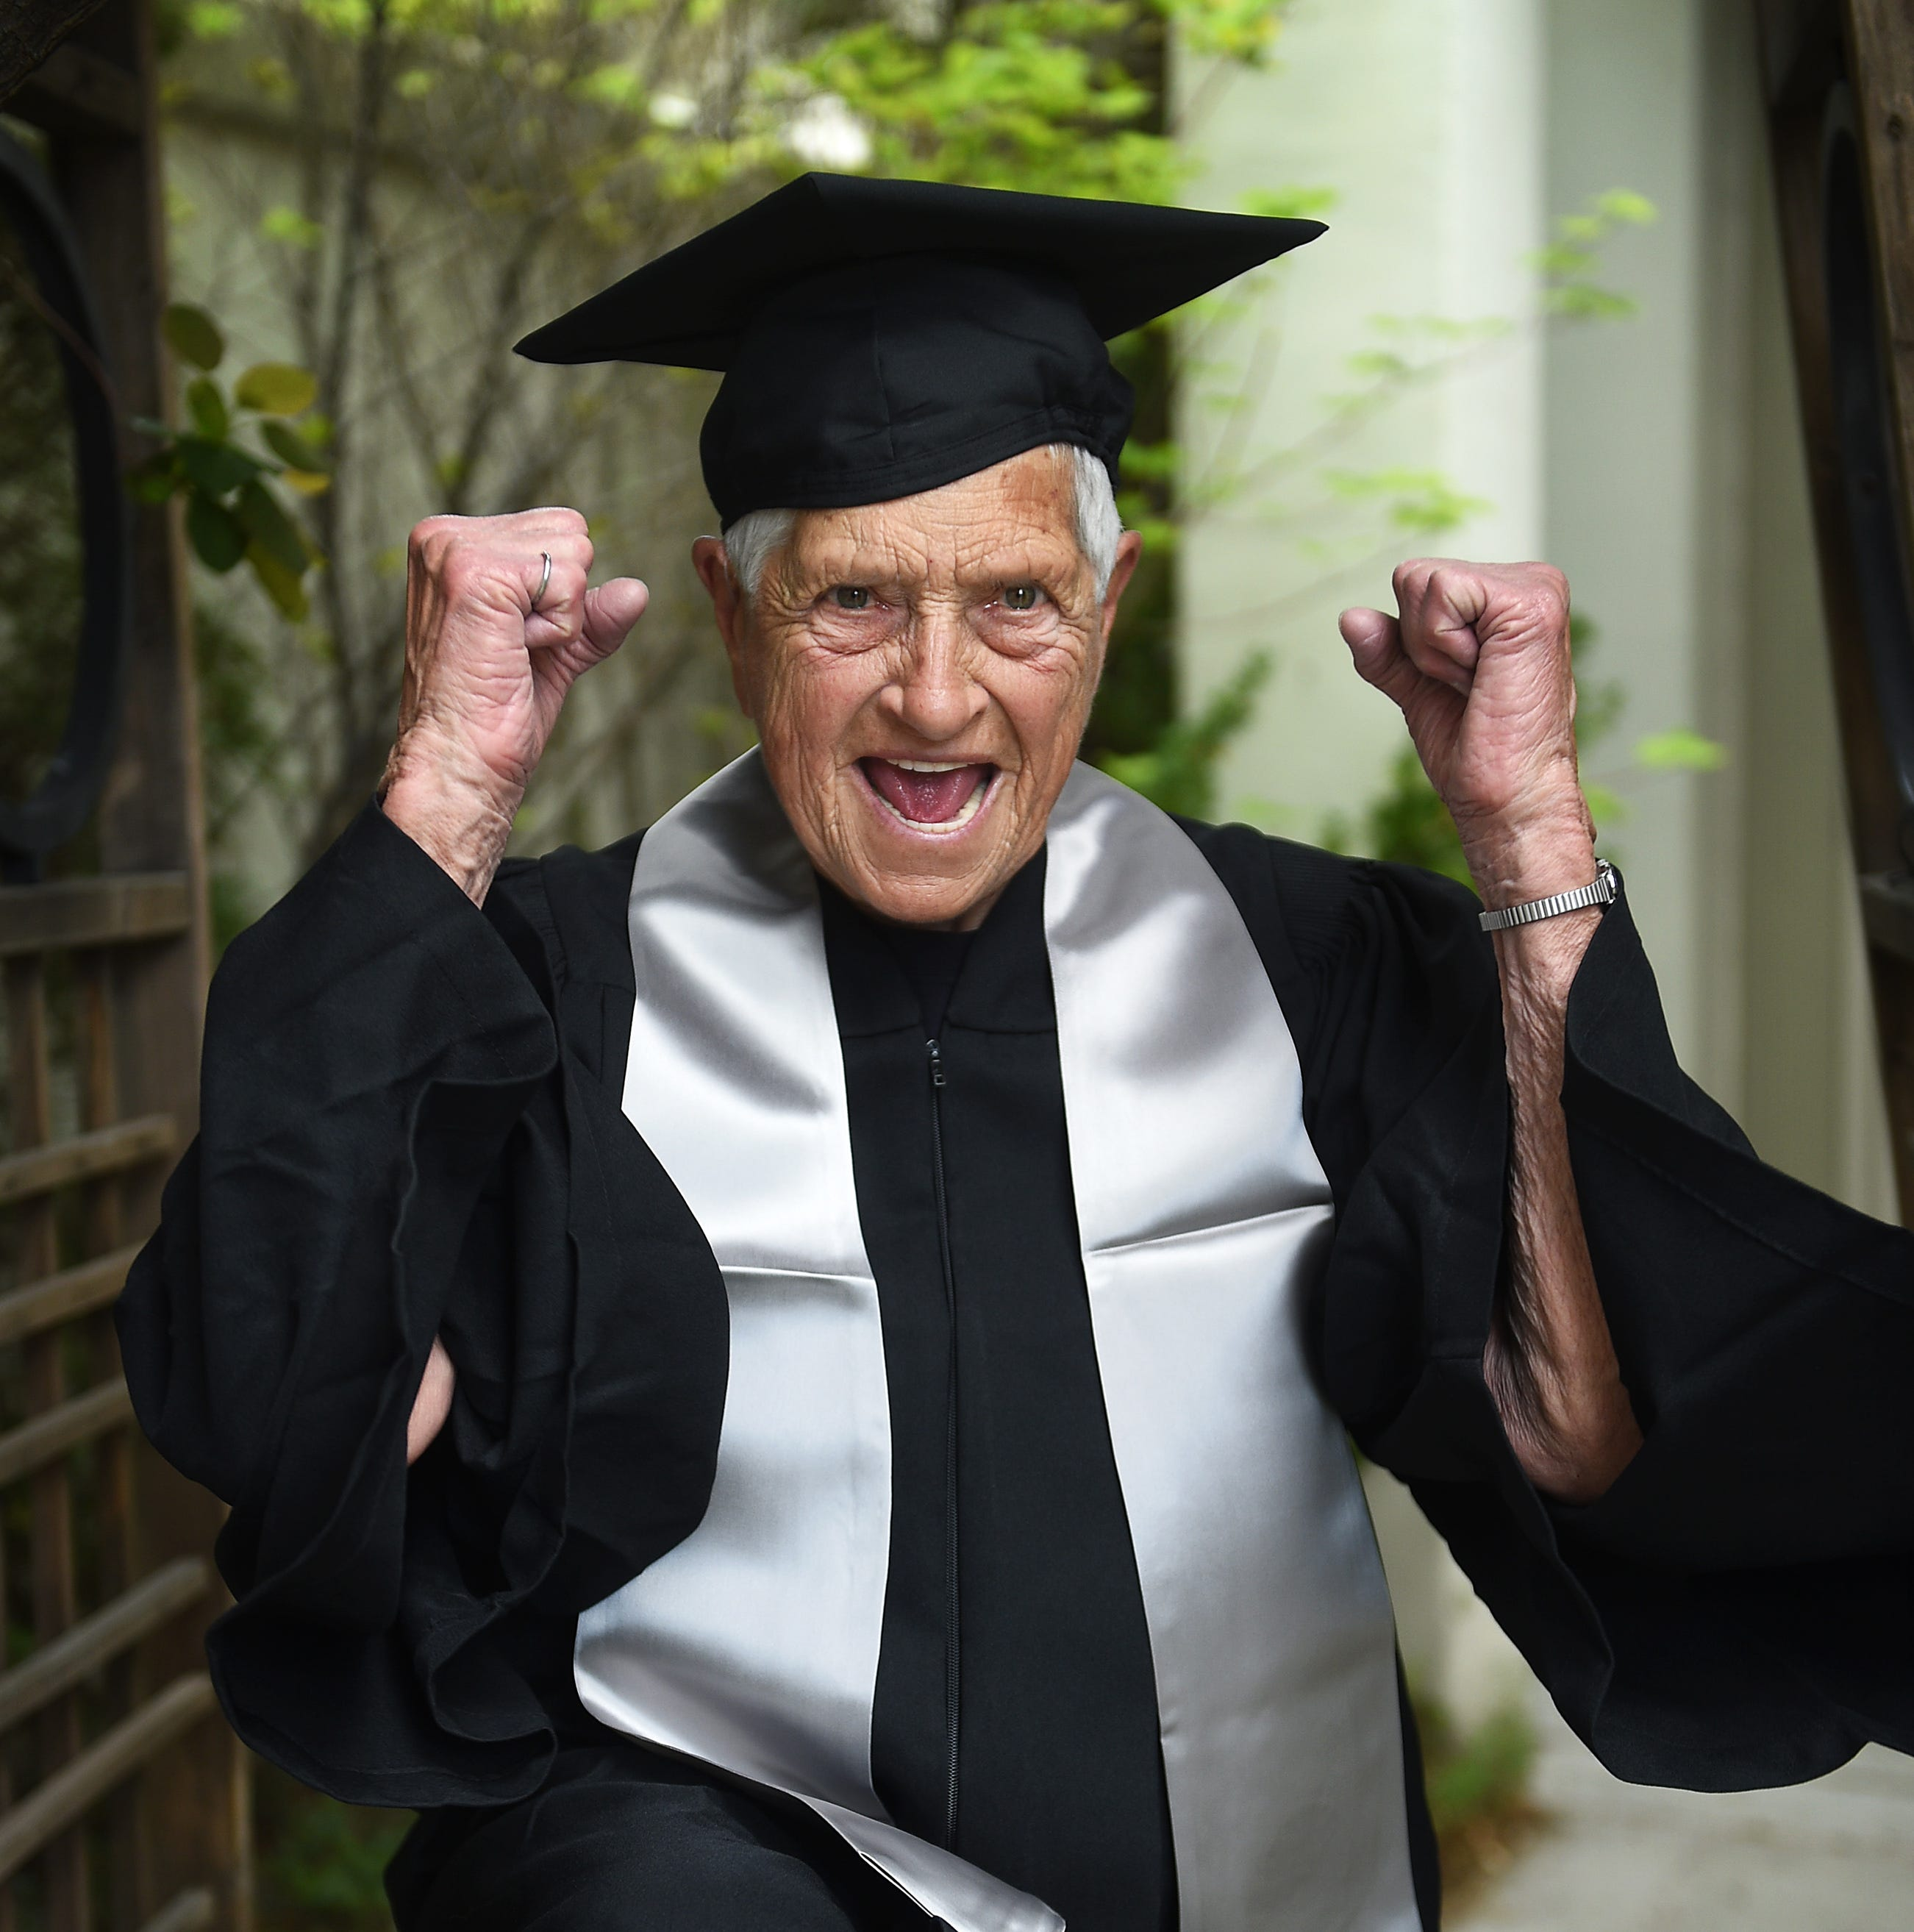 'Dreams do come true': 90-year-old woman will get her degree at college graduation ceremony